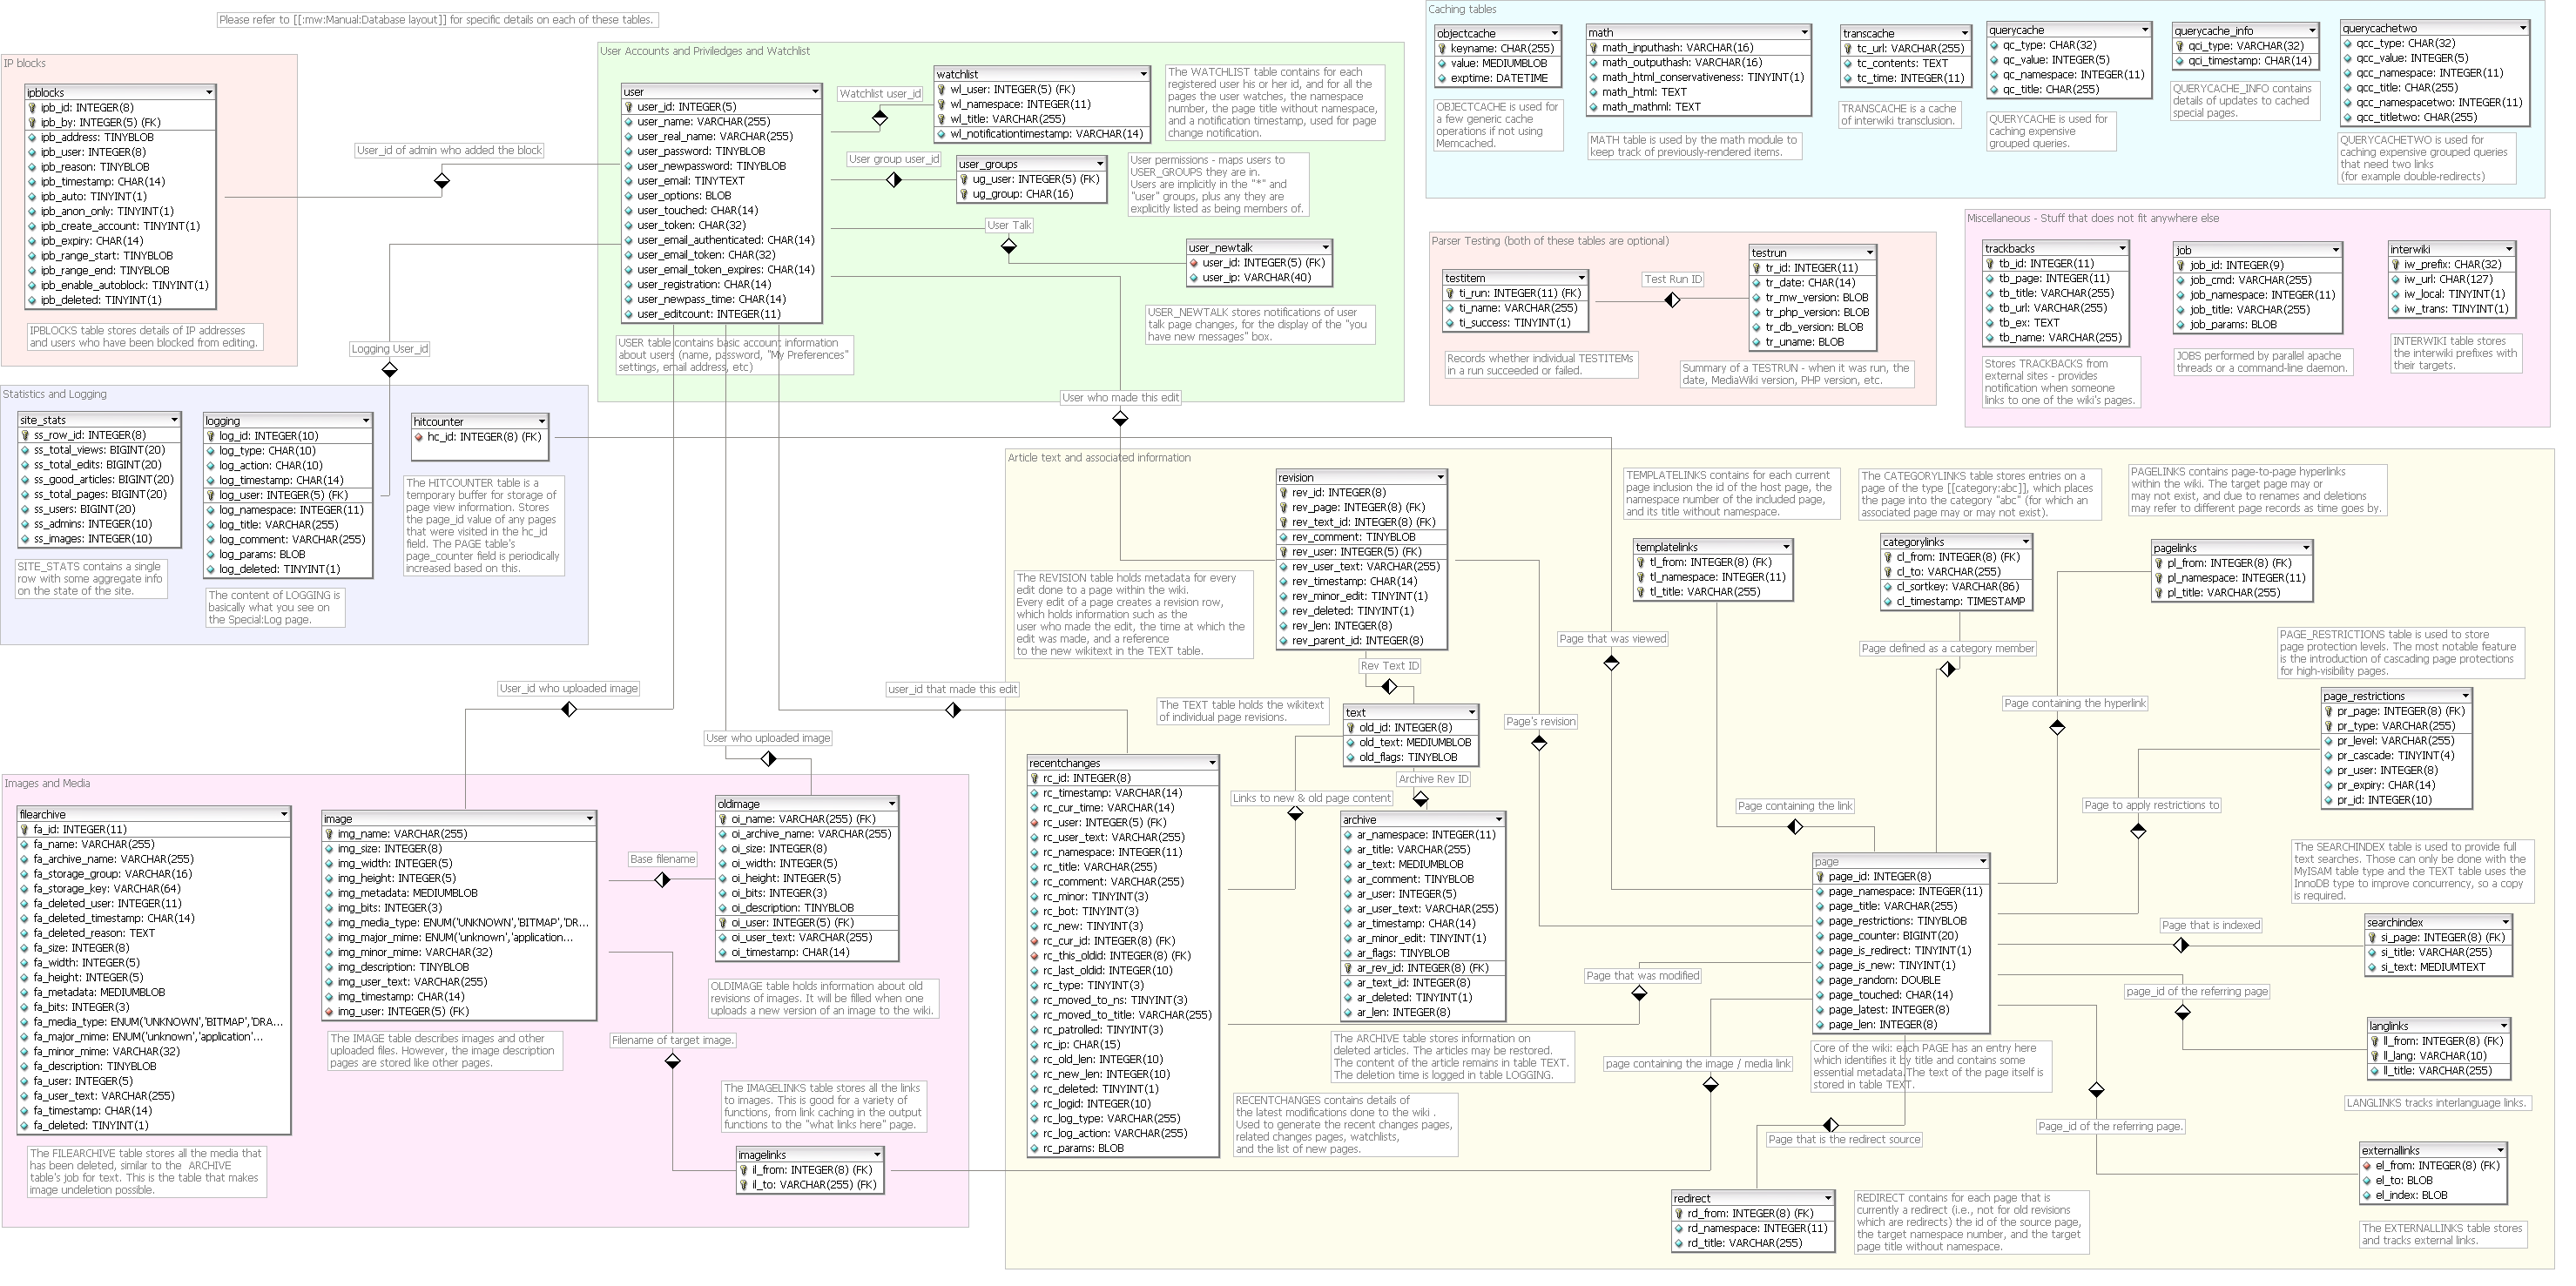 File:MediaWiki 1.10 database schema.png - Wikimedia Commons